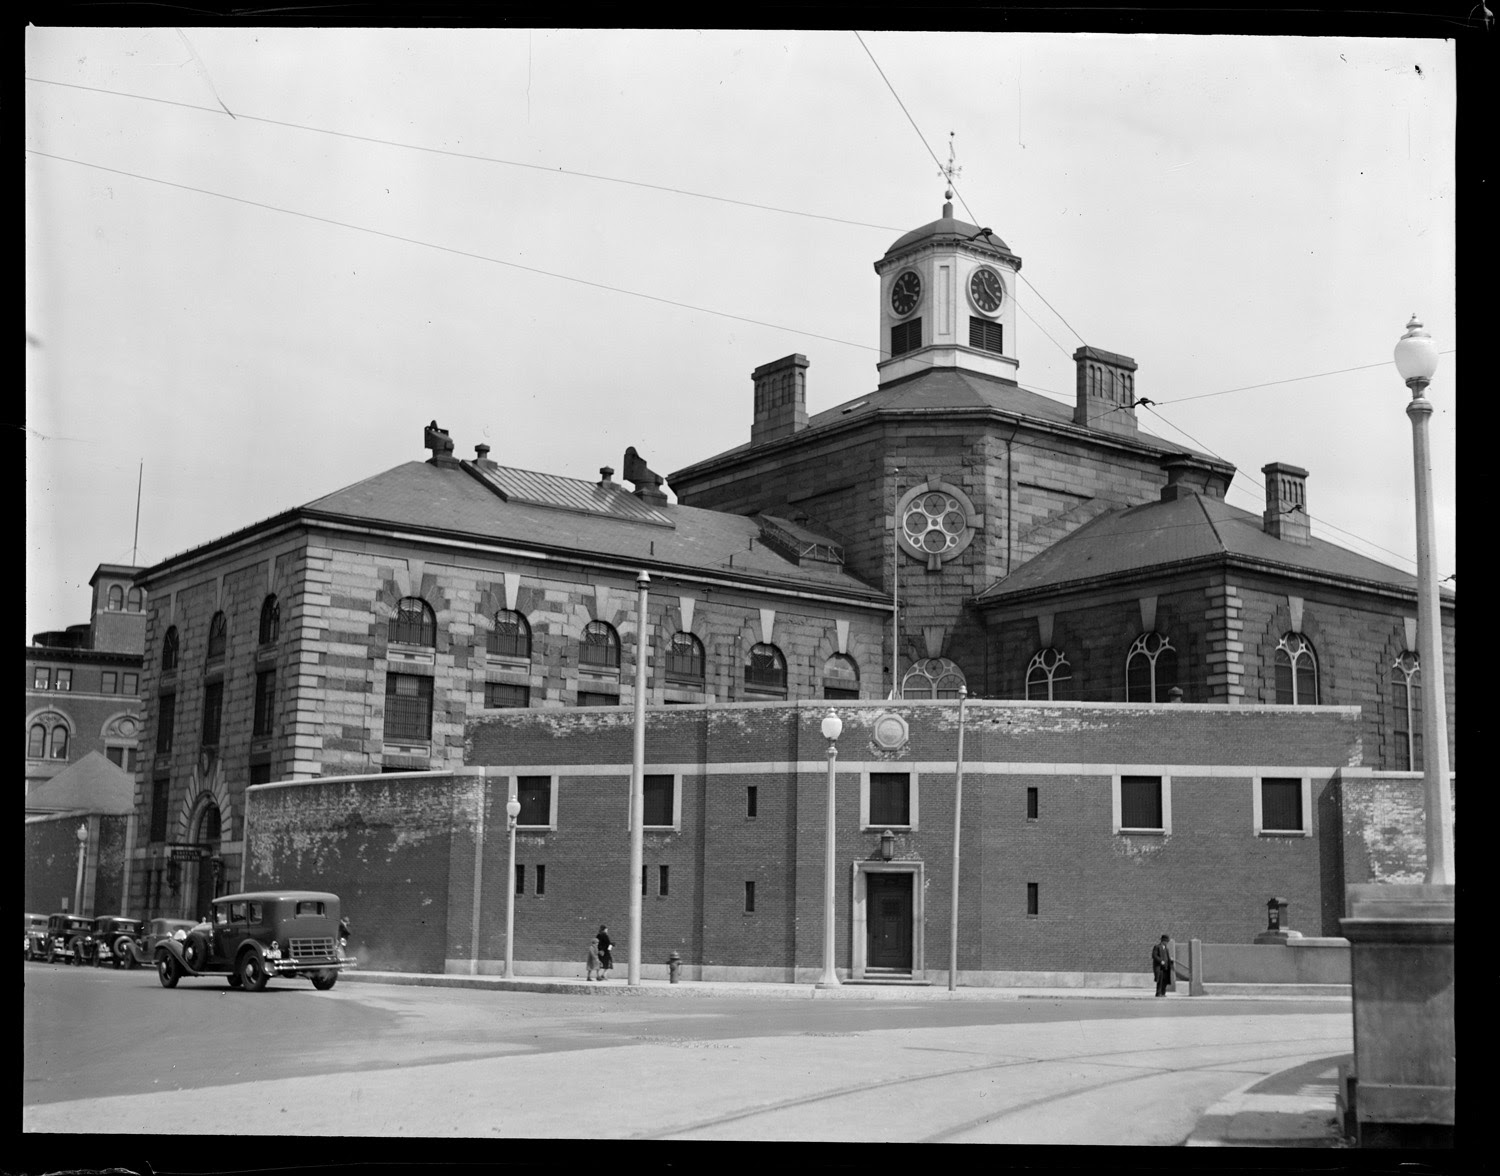 Charles Street jail Boston 1930